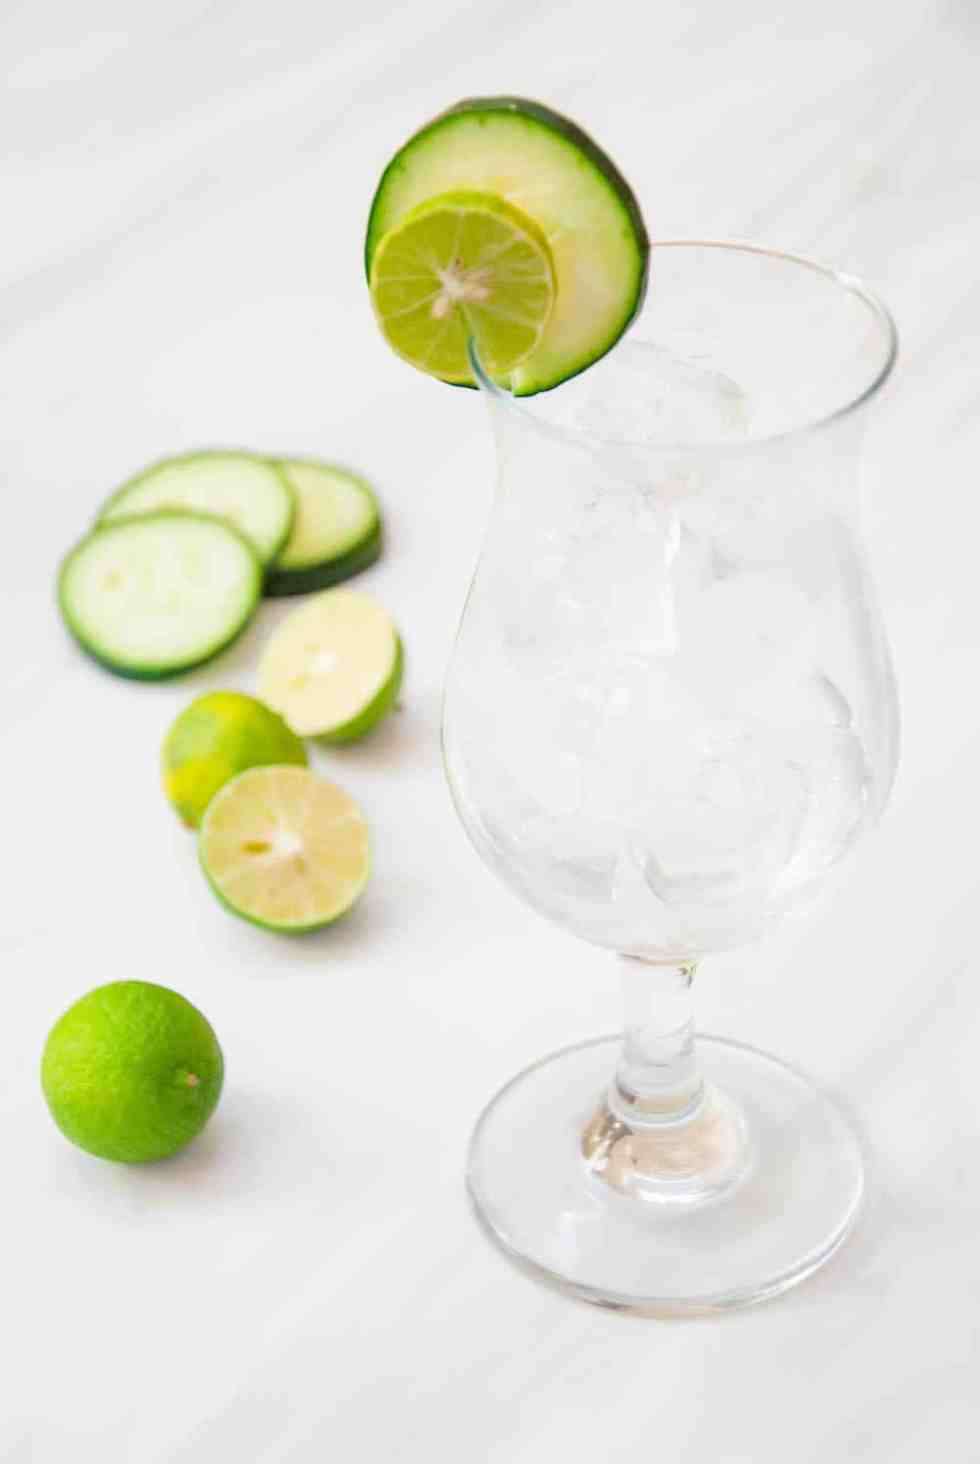 Island-Inspired Edible Cocktail Garnish: Cucumber + Key Lime